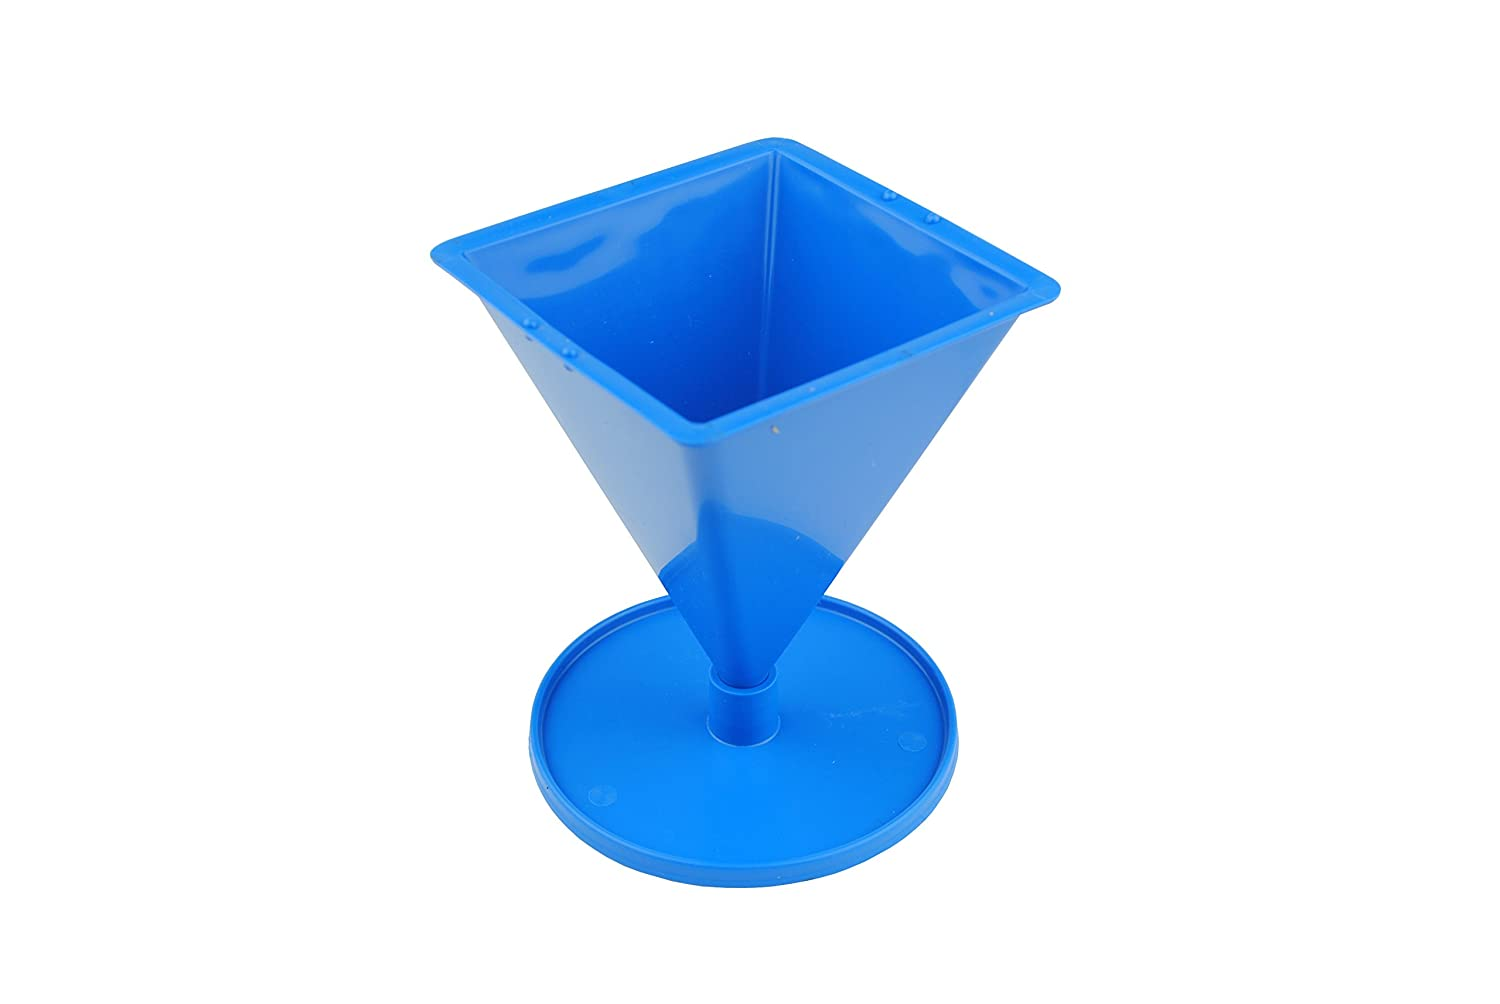 11 x Candle Moulds Trays Star Sphere Pentagon Rocket Square Pillar Pyramid S7614